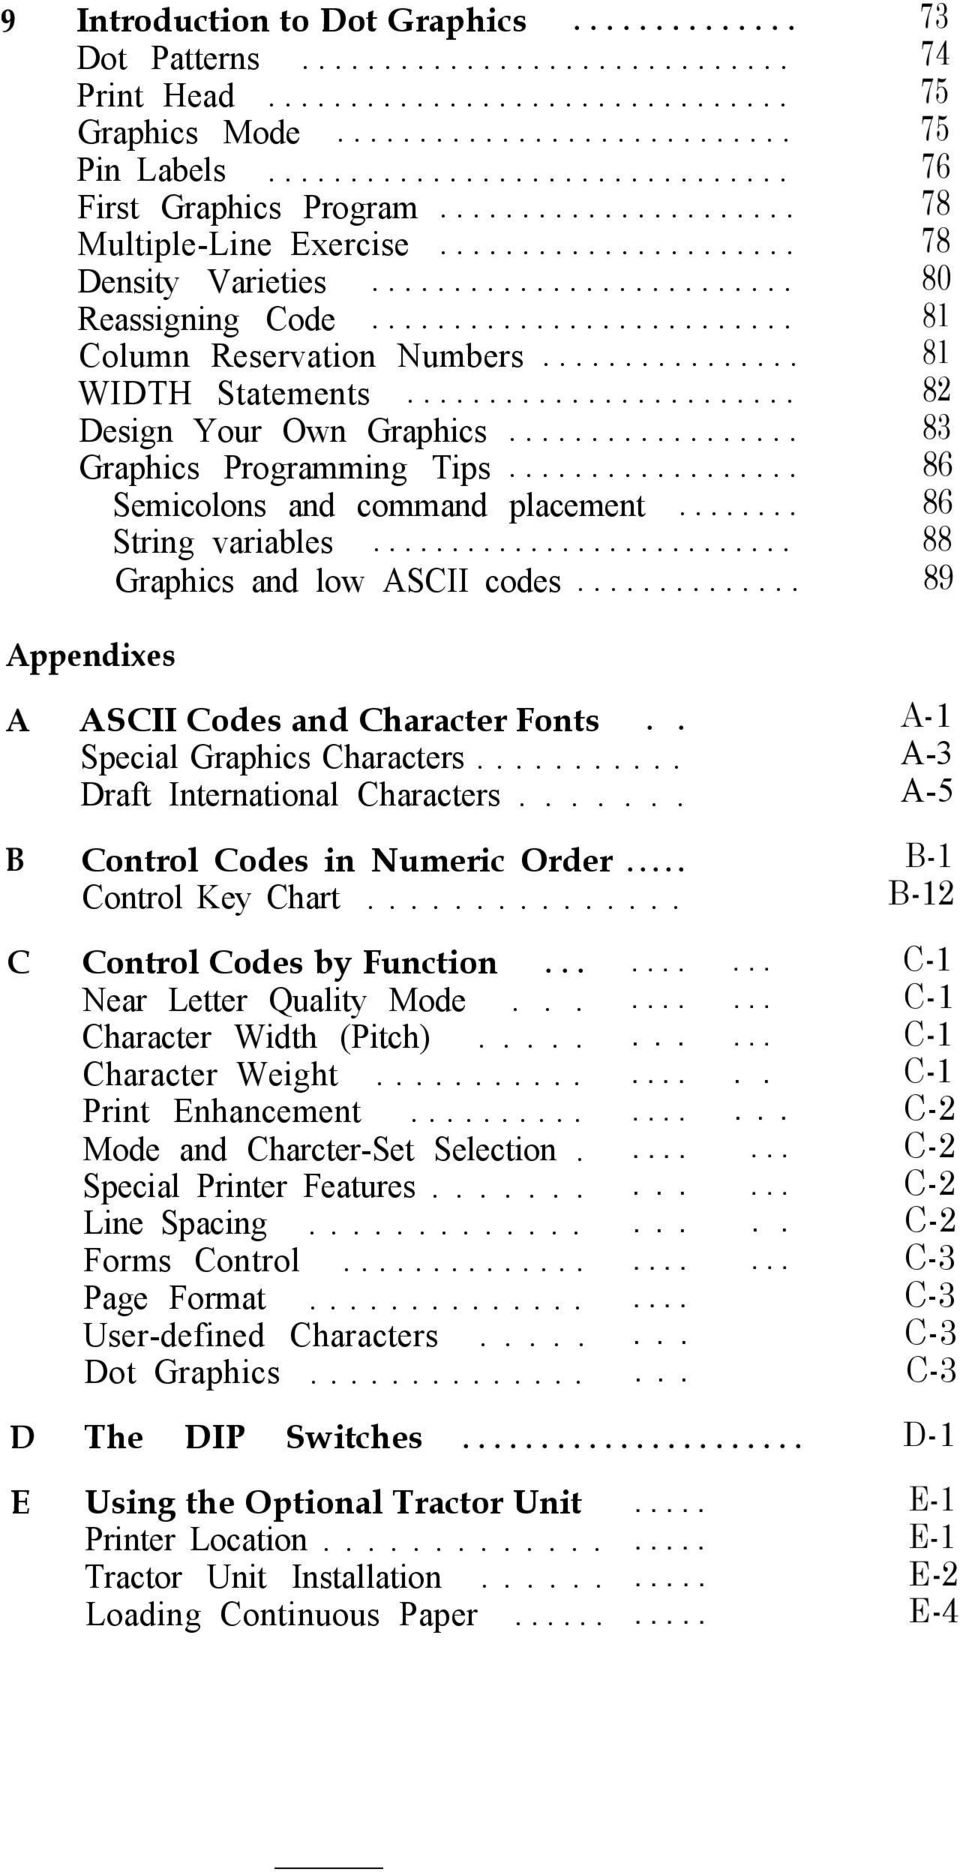 .. 86 String variables... 88 Graphics and low ASCII codes... 89 Appendixes A ASCII Codes and Character Fonts.. Special Graphics Characters........... Draft International Characters.